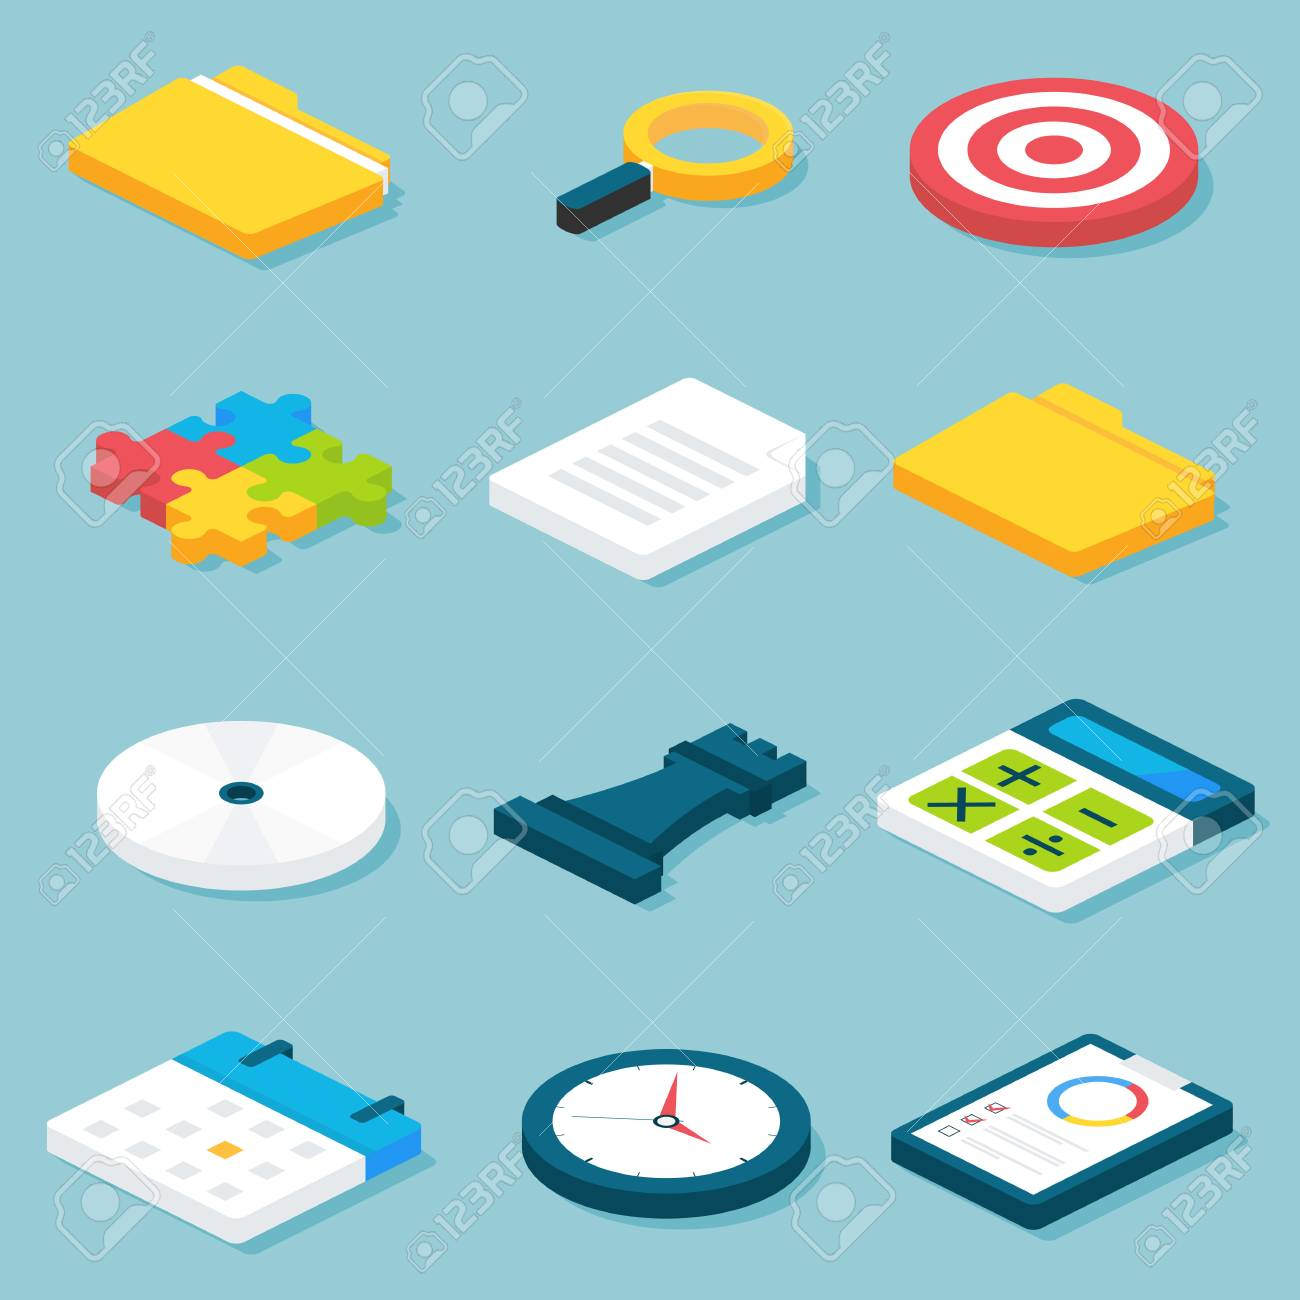 flat isometric business objects set vector illustration of office life and business concepts objects set business concepts business life office